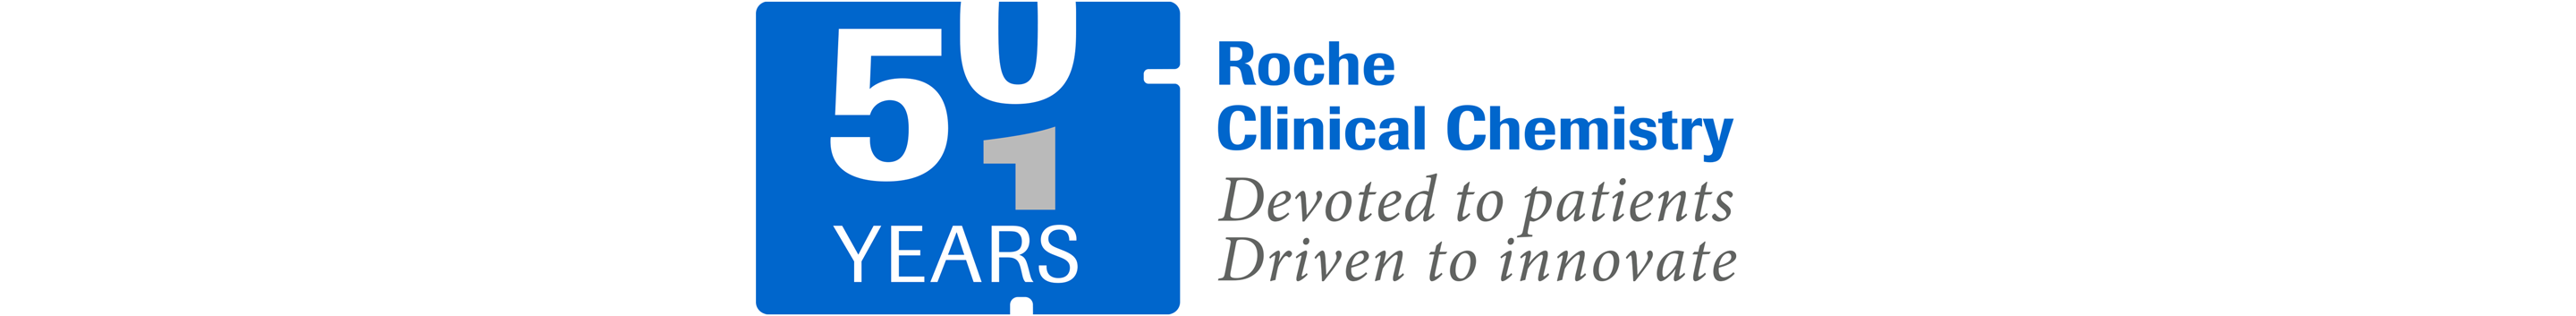 50 years of Roche Clinical Chemistry